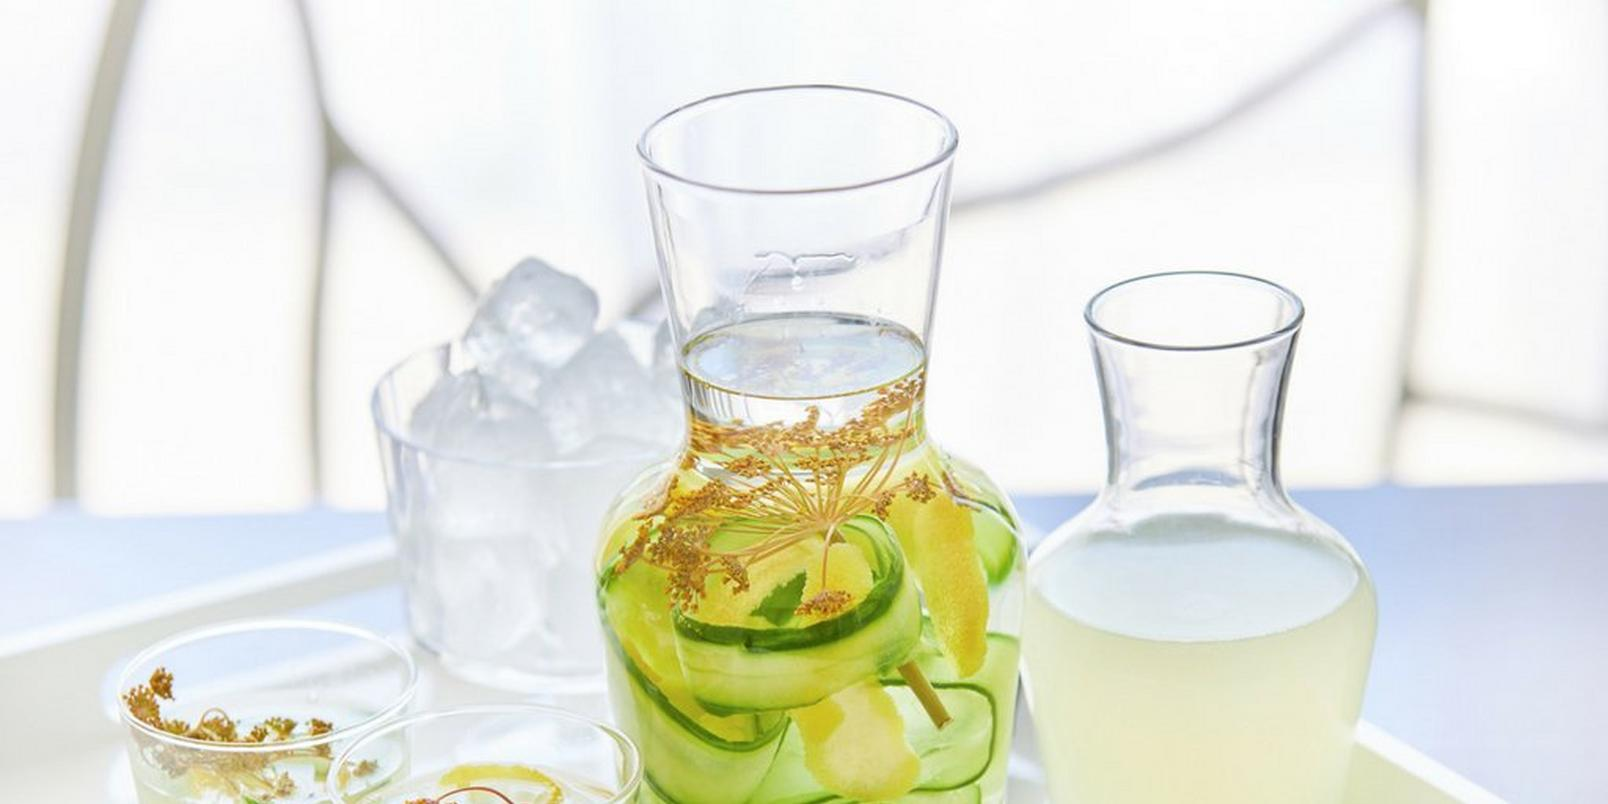 6-Floral-Cocktail-Recipes-Youll-Love-This-Summer1